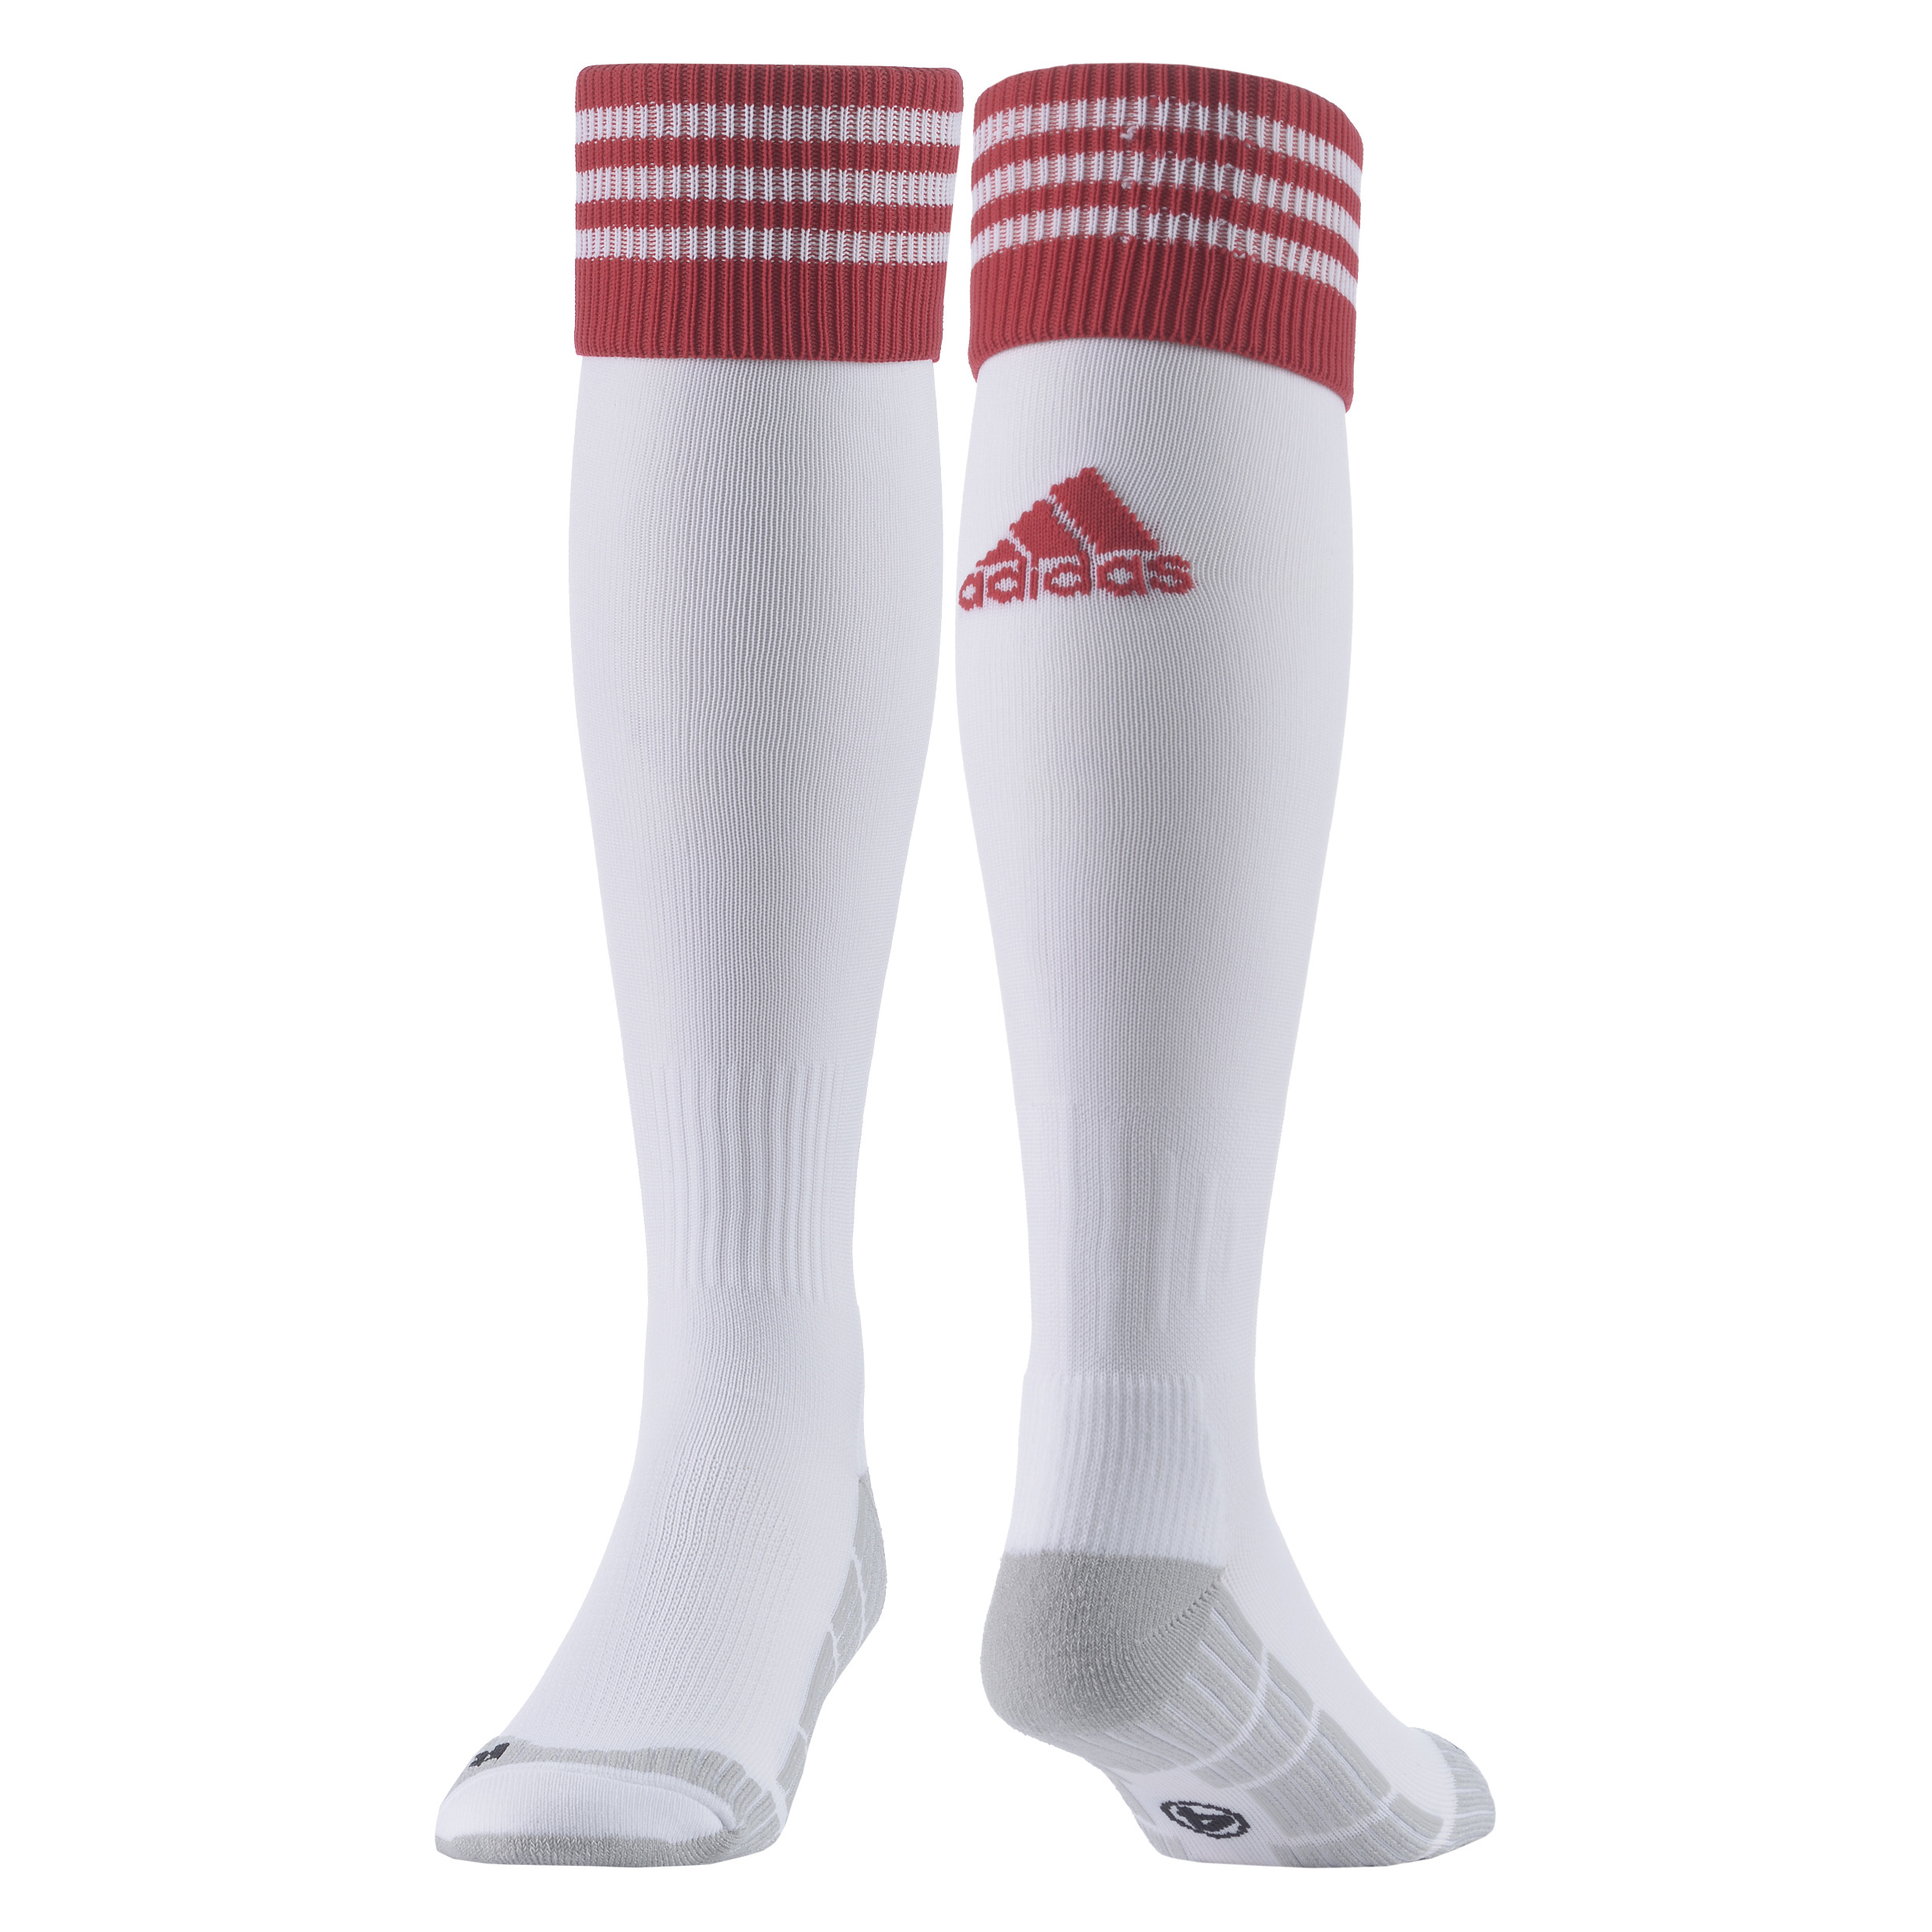 Ajax Home Sock 2014/15